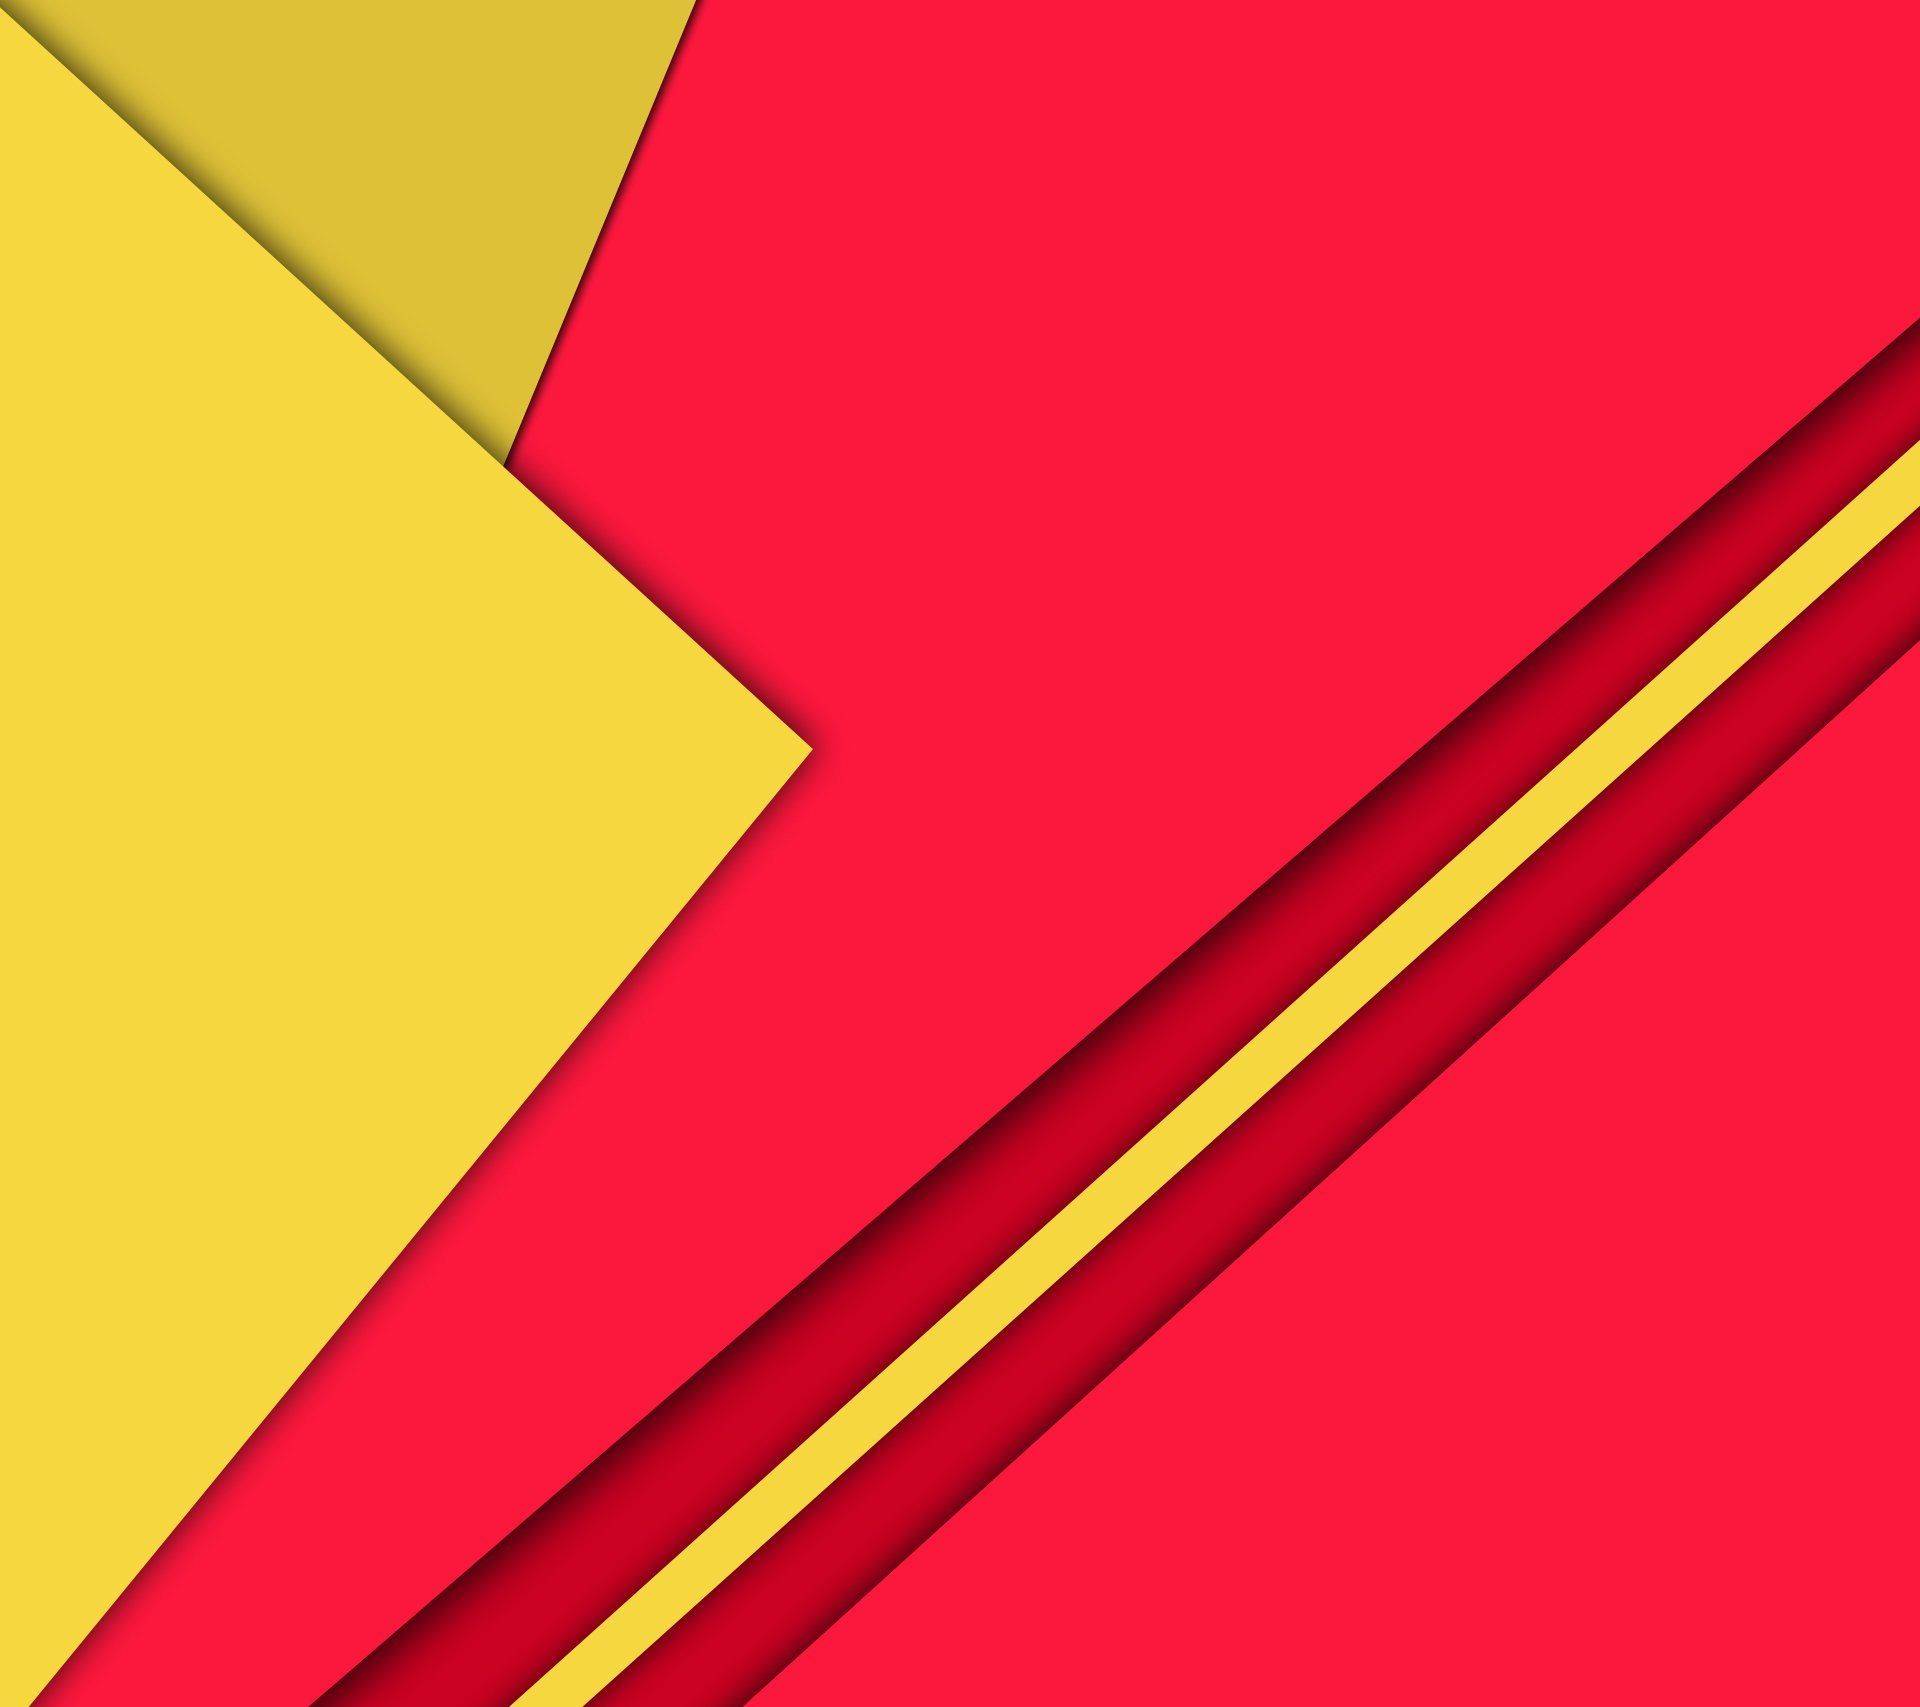 Android 5 0 Lollipop Material Design Lines Abstractions Triangles